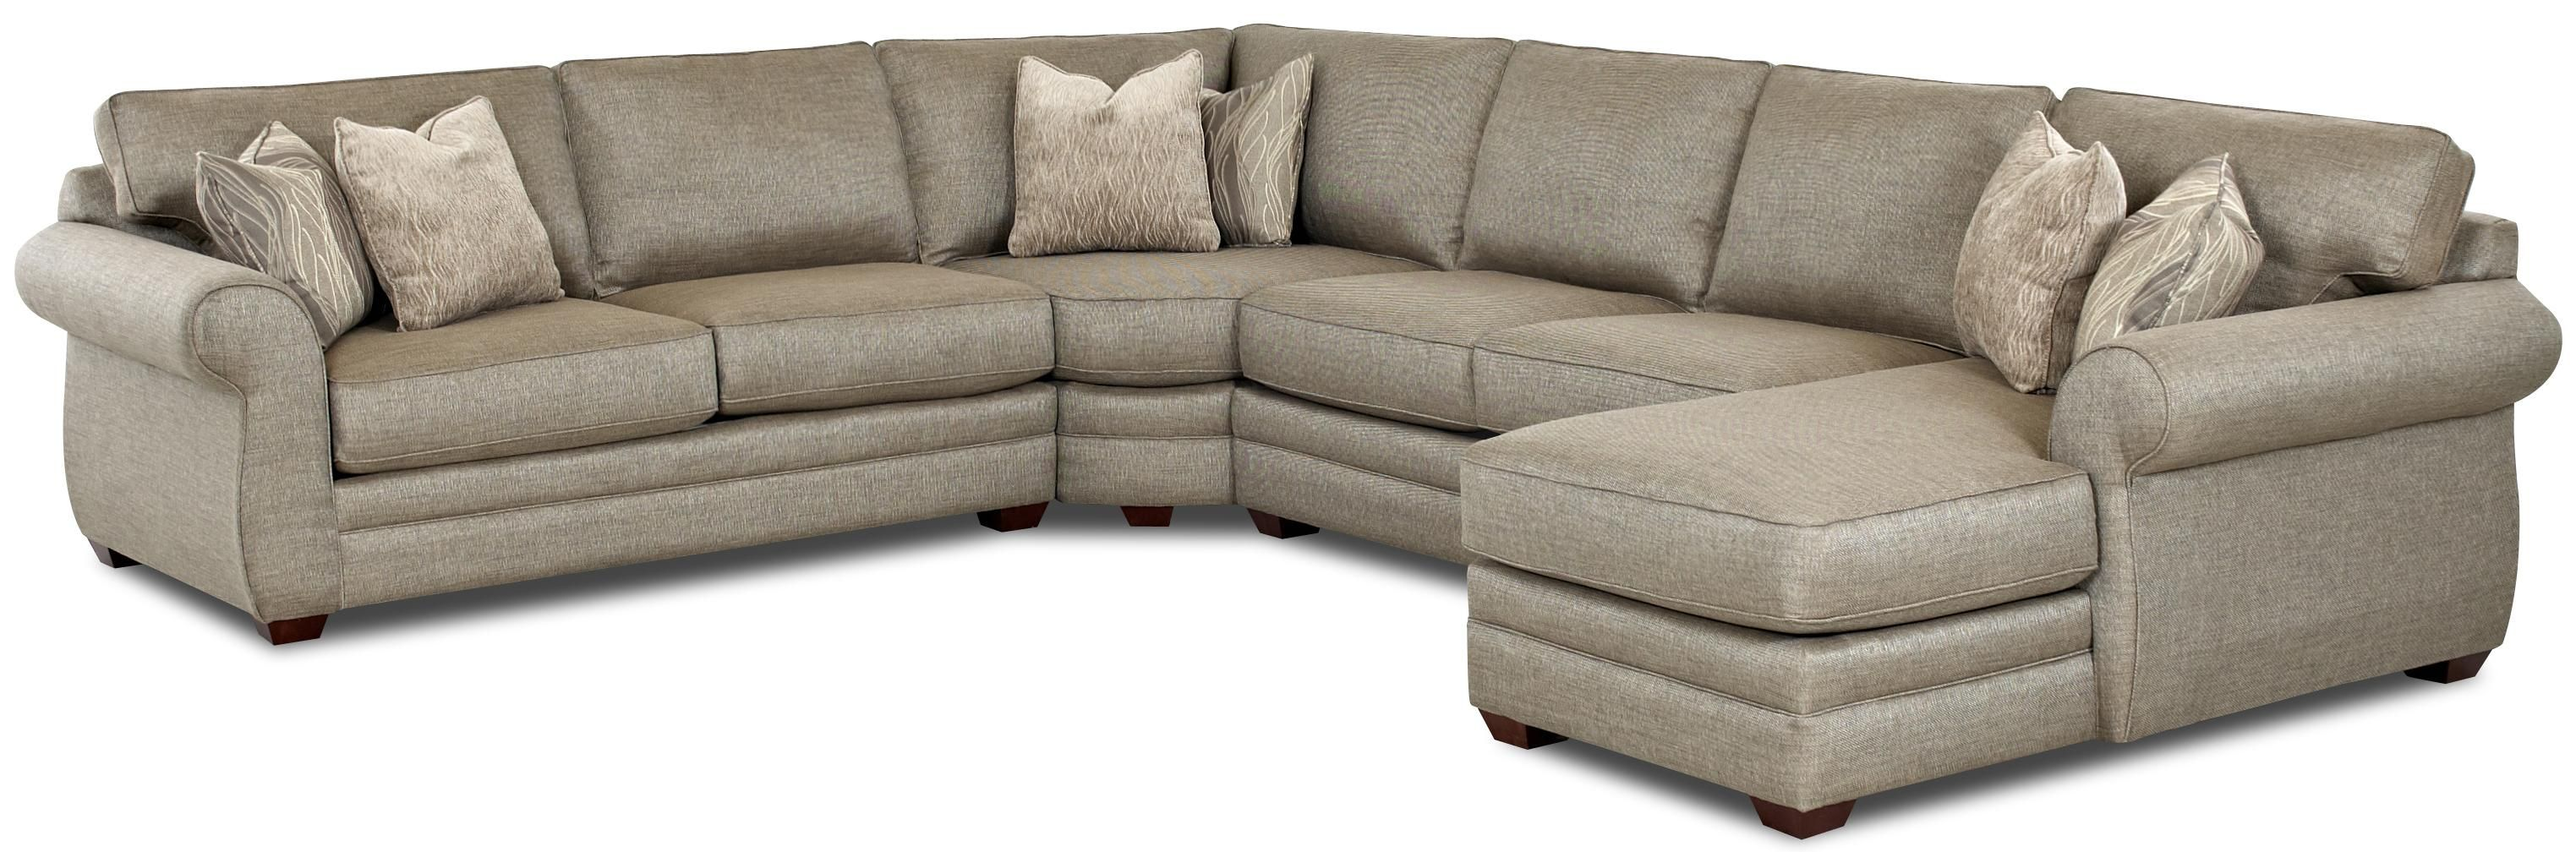 Pantego 3 Piece Sectional Sofa with RAF Chaise by Klaussner